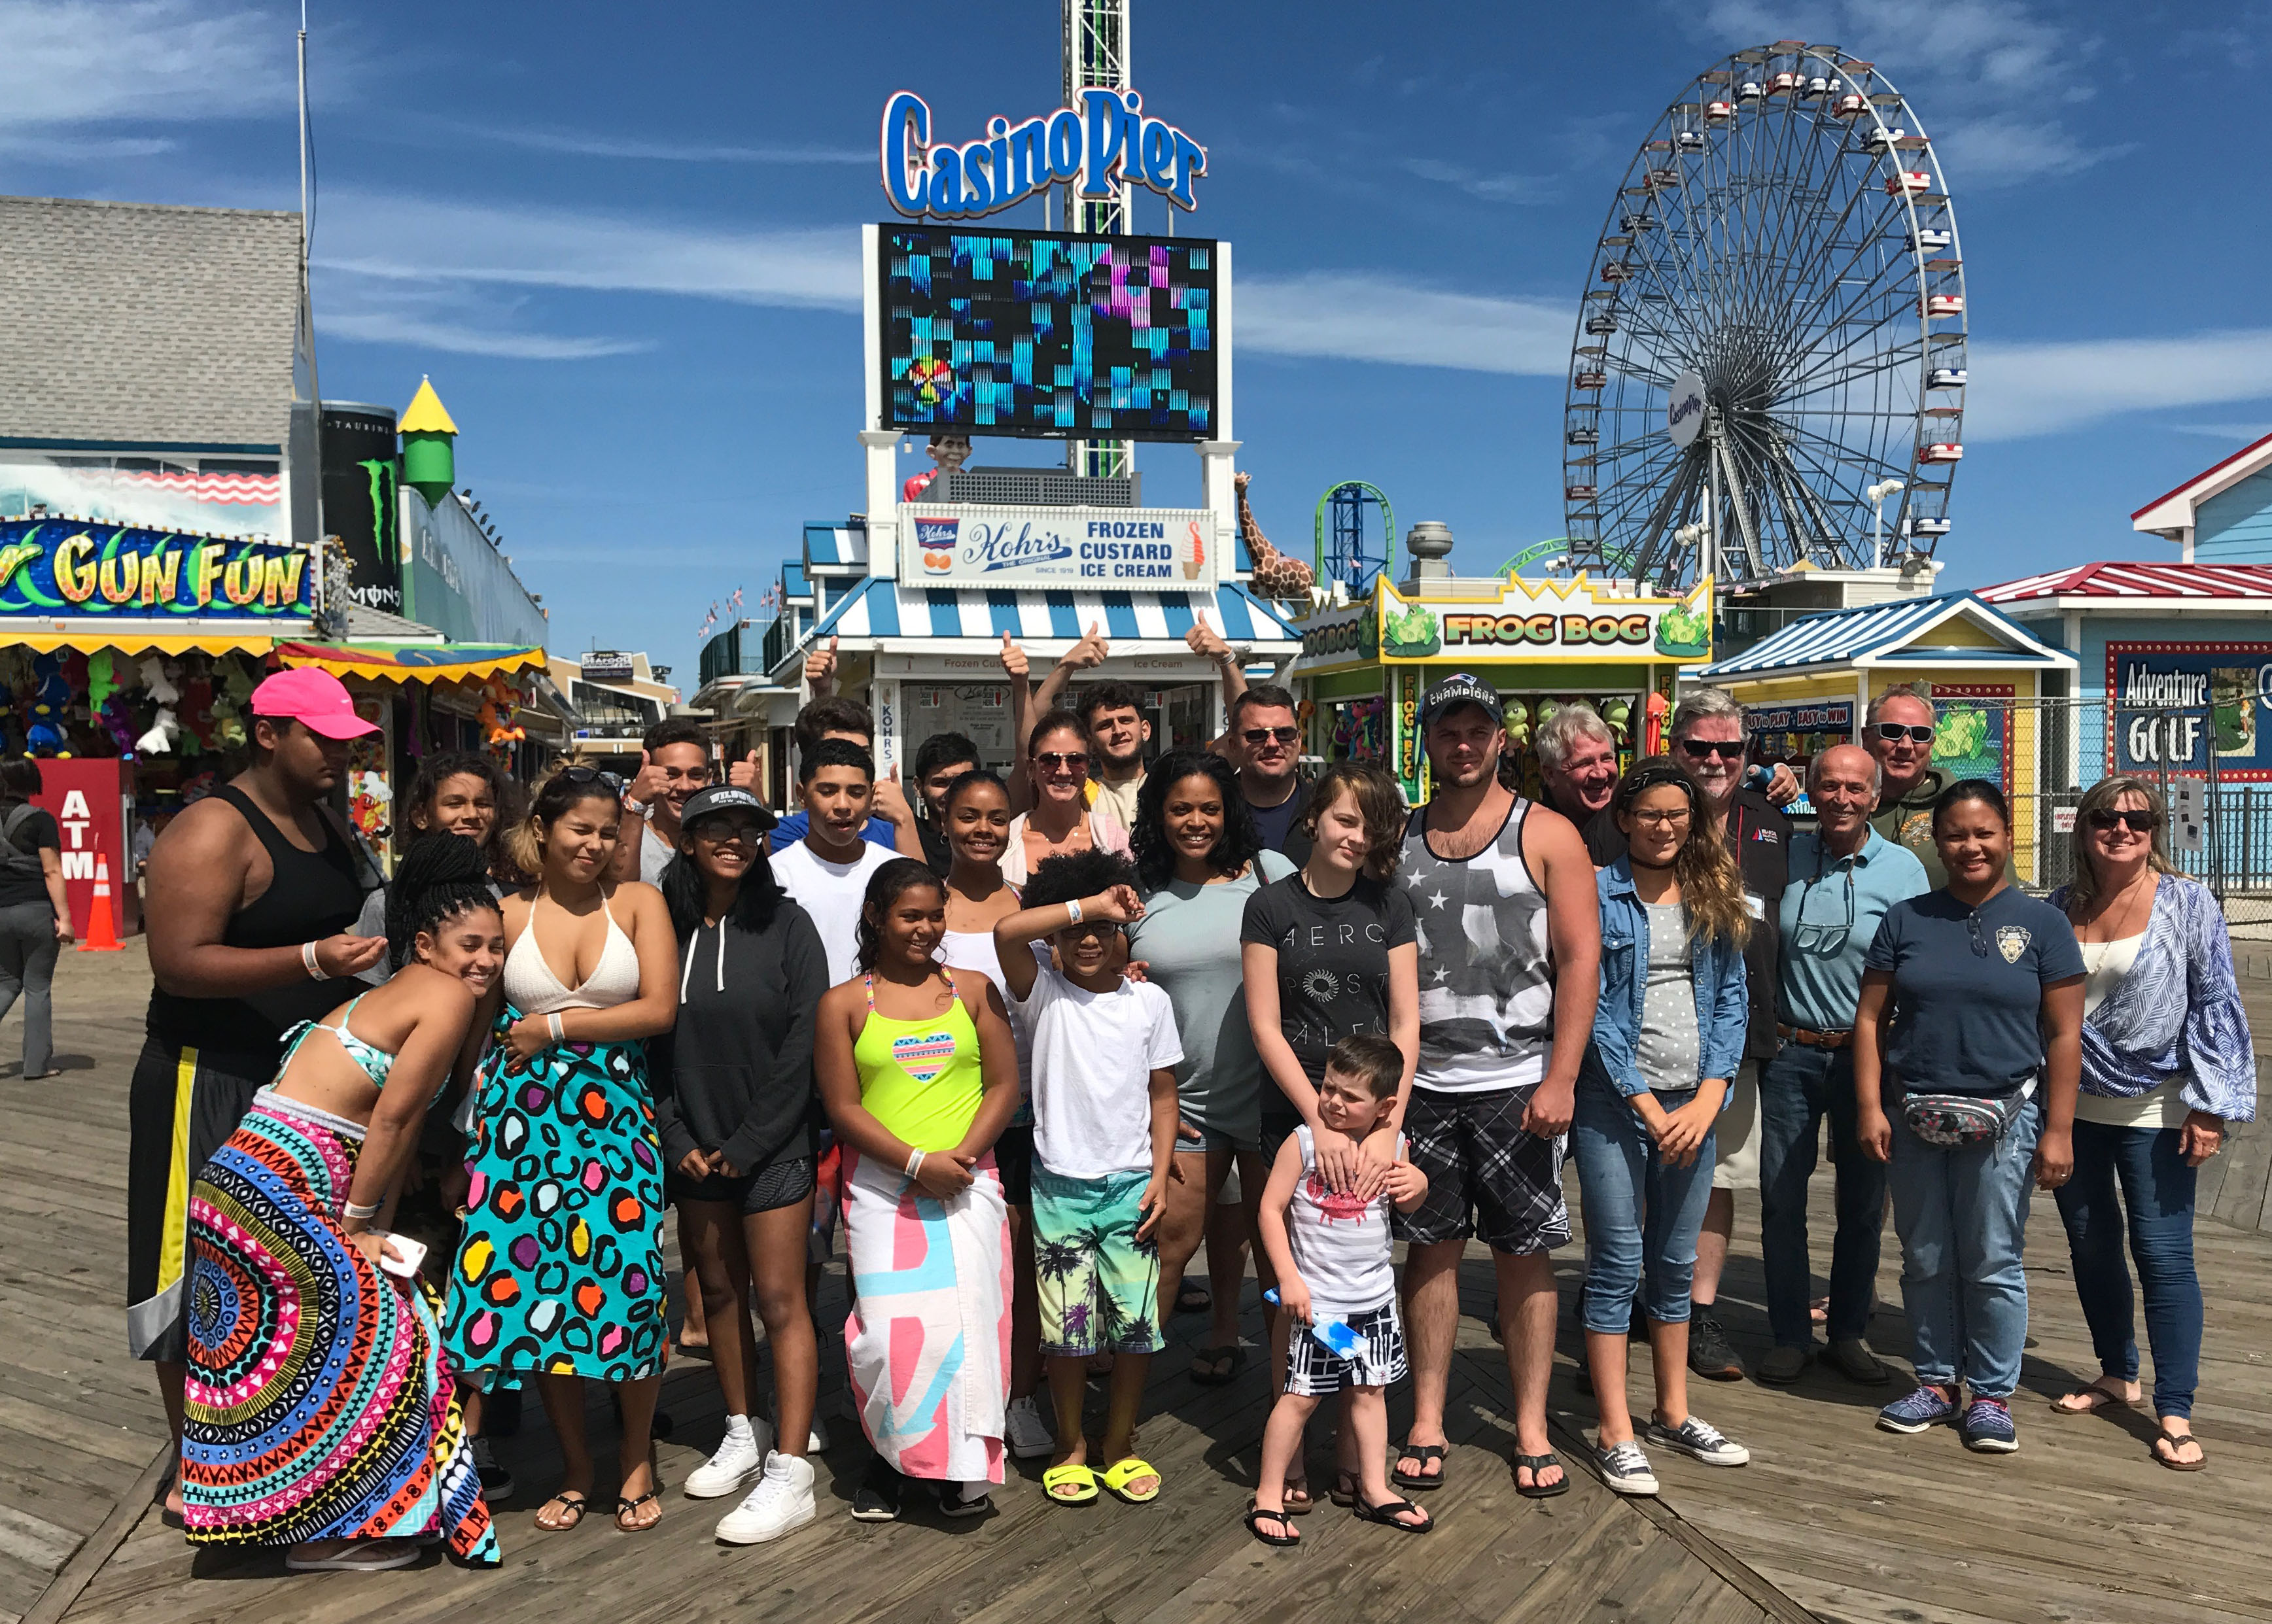 Service members and their families from Joint Base MDL in Seaside Heights, Sept. 1, 2017. (Photo: Daniel Nee)